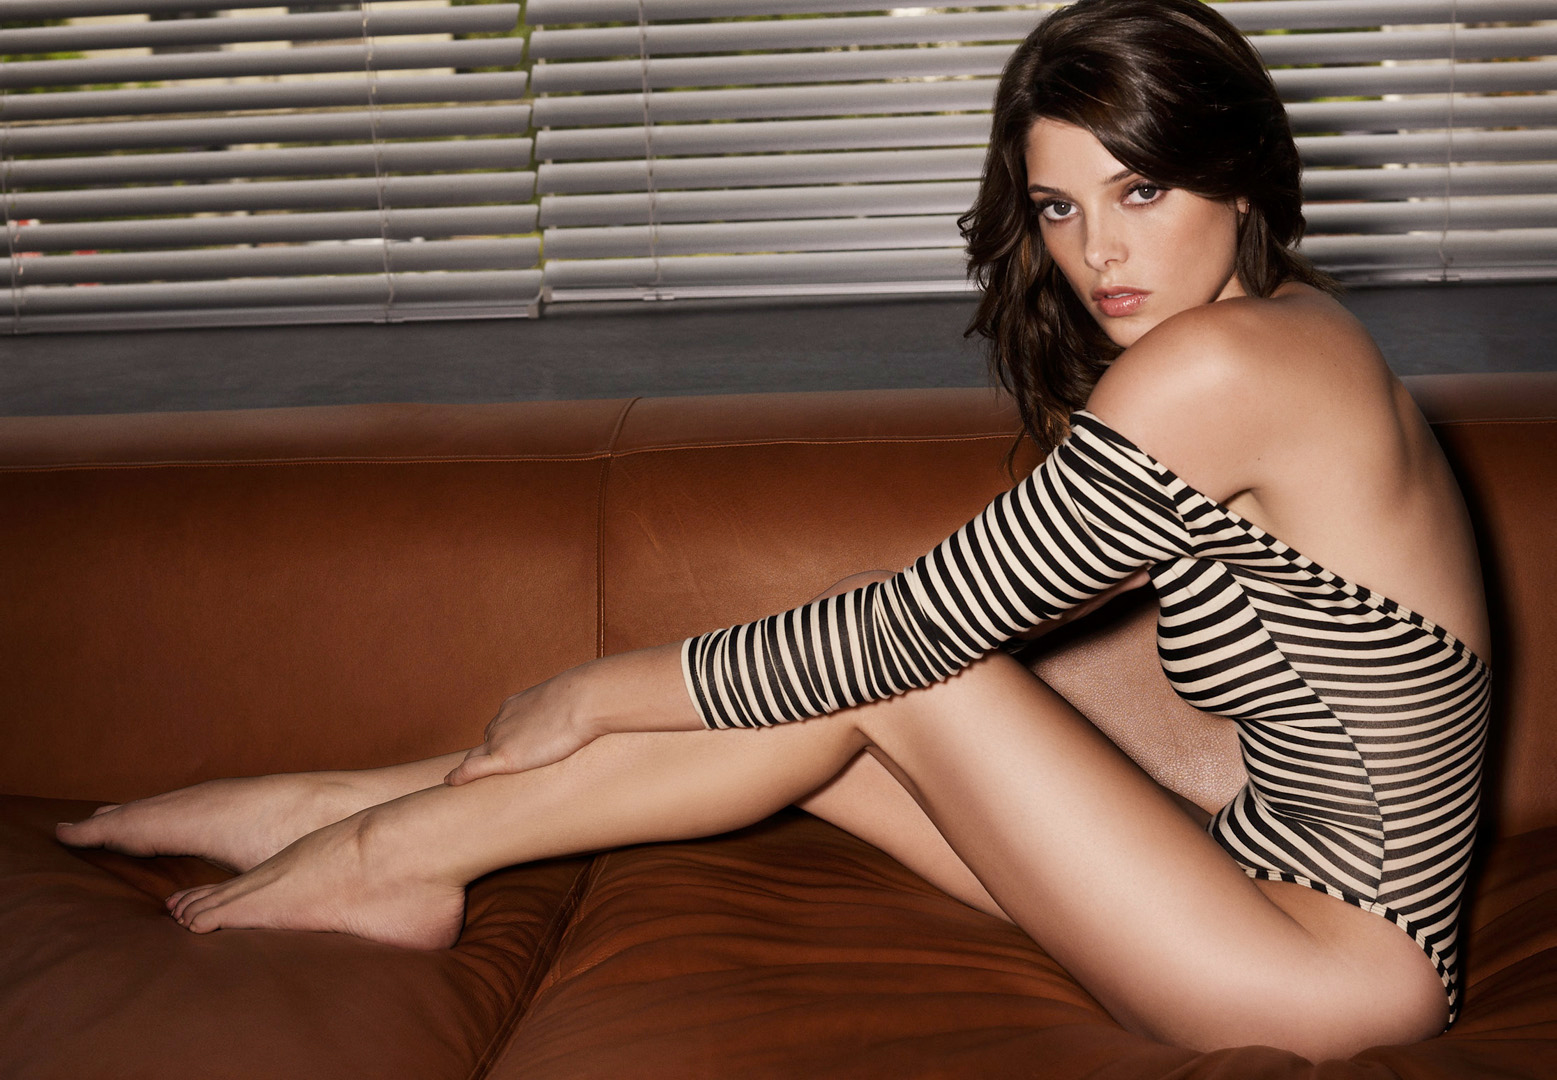 http://4.bp.blogspot.com/-rs2CZw36bFM/Tv-REbPXNlI/AAAAAAAAAQA/SaX1-bhbQfw/s1600/Ashley-Greene.jpg